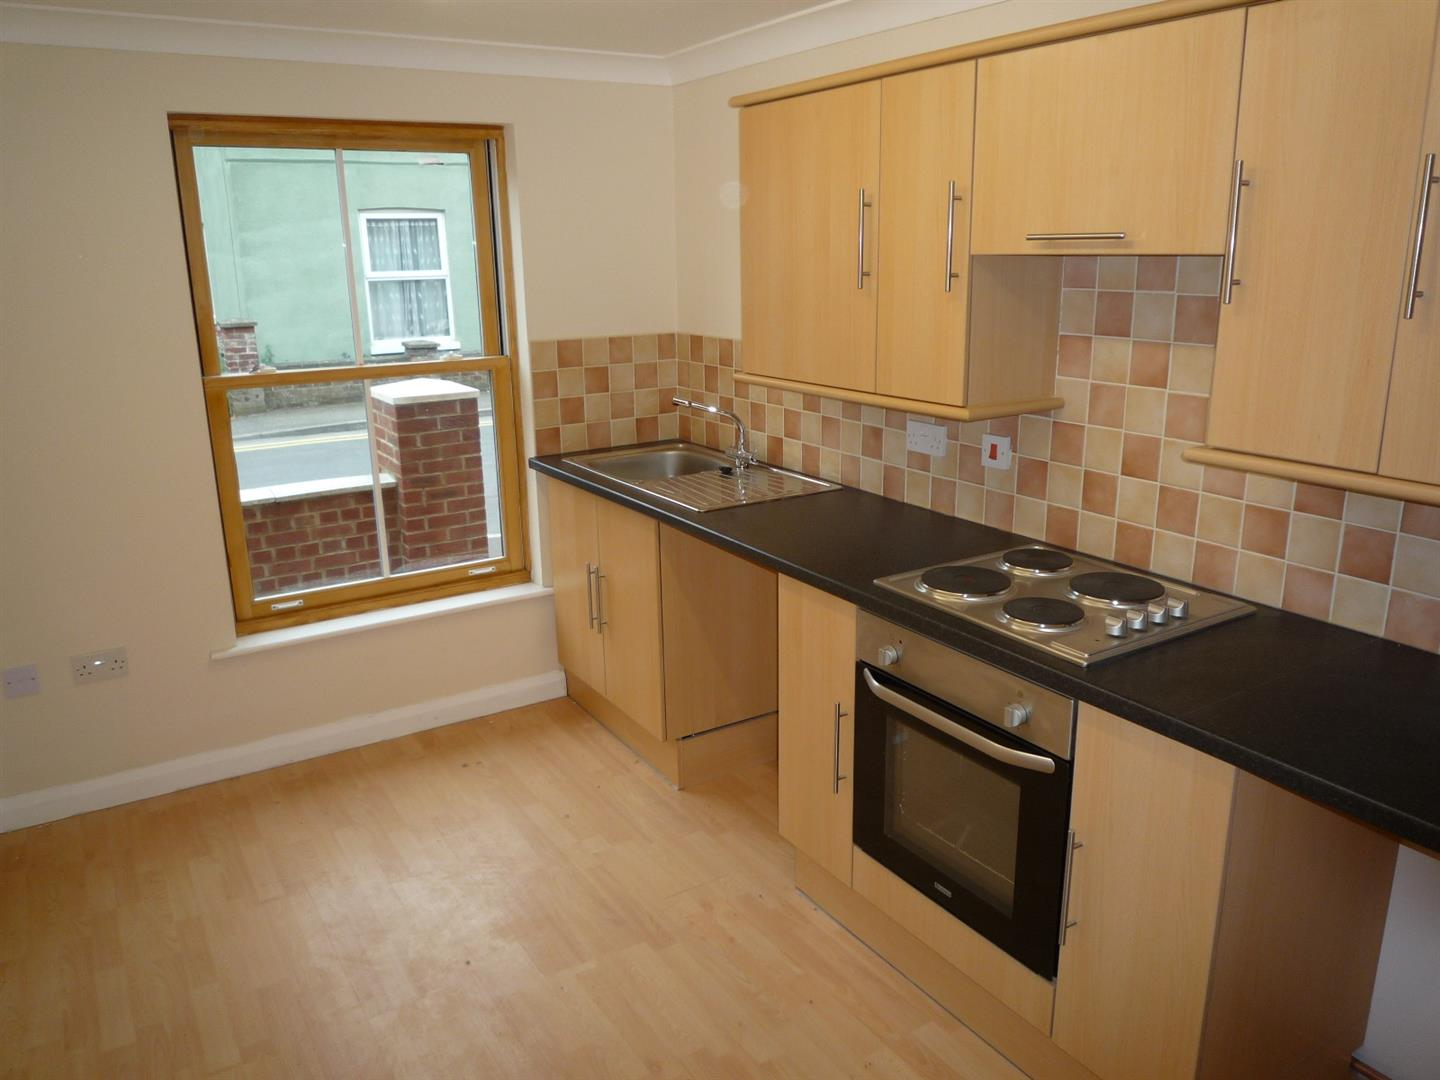 3 bed house to rent in Holbeach Spalding, PE12 7DR 3